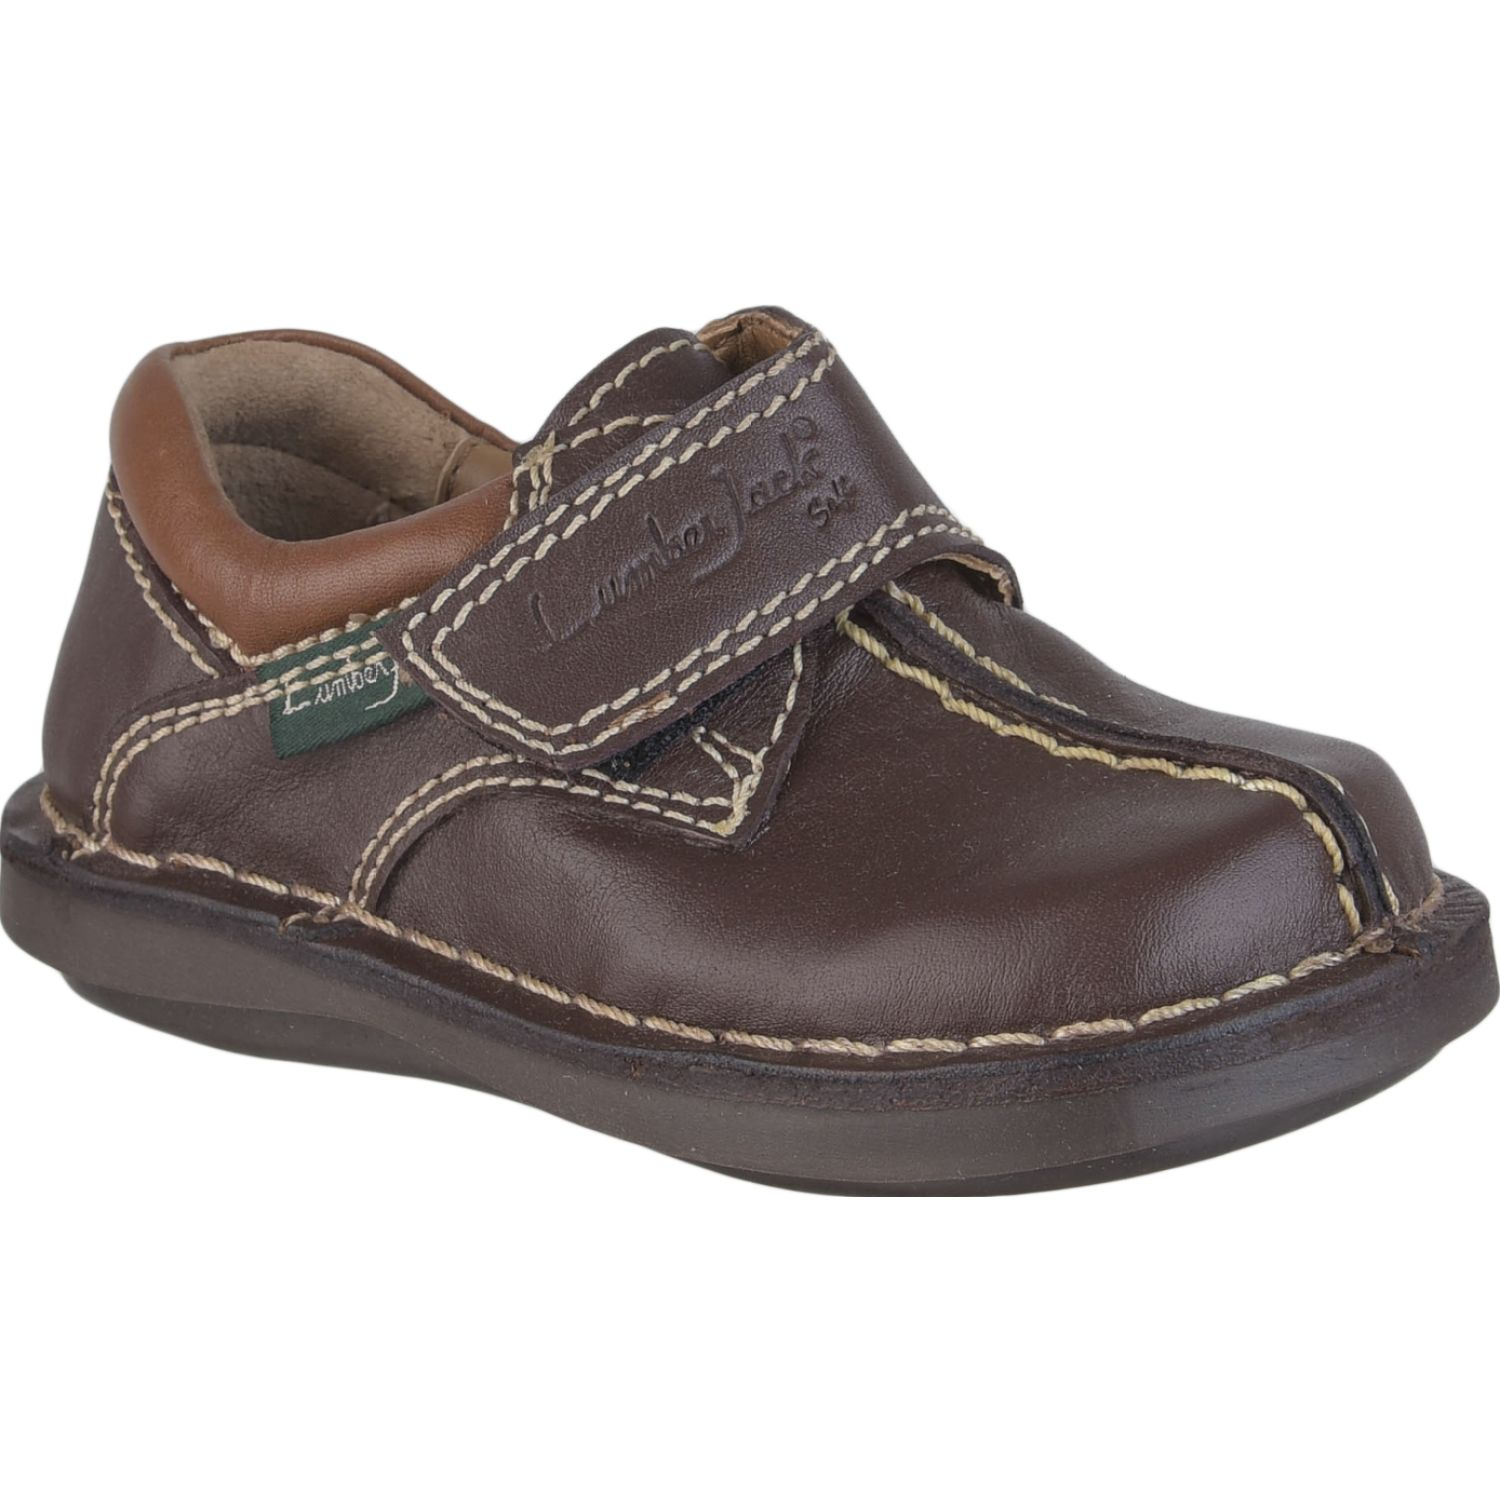 LumberJack 012060-l4 Marron Oxfords